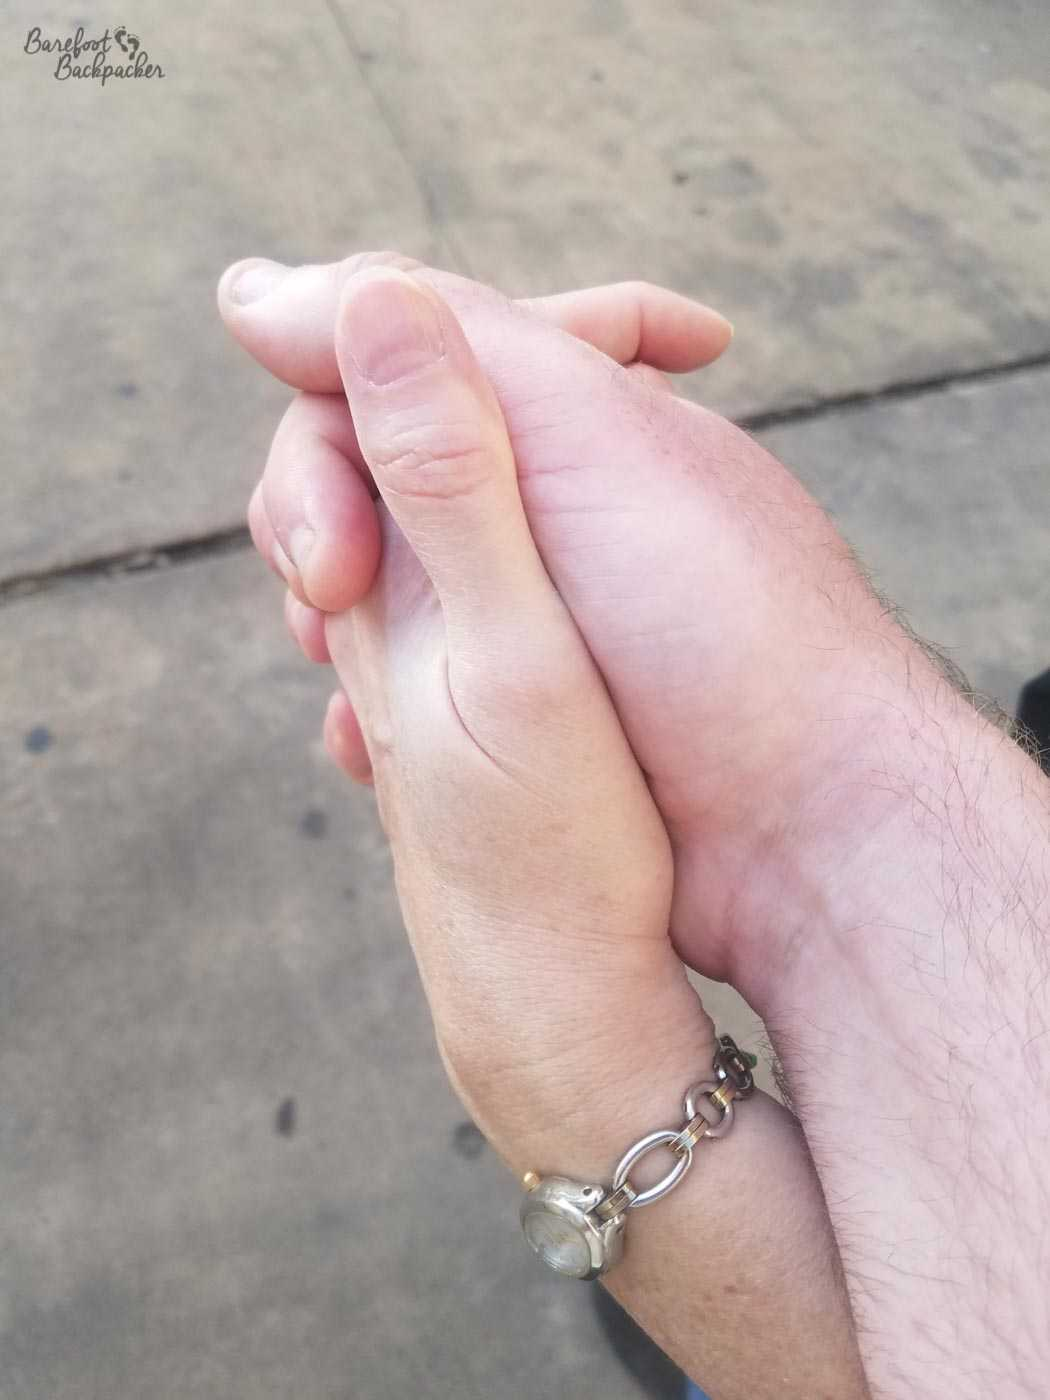 Close-up of two people holding hands in the street.